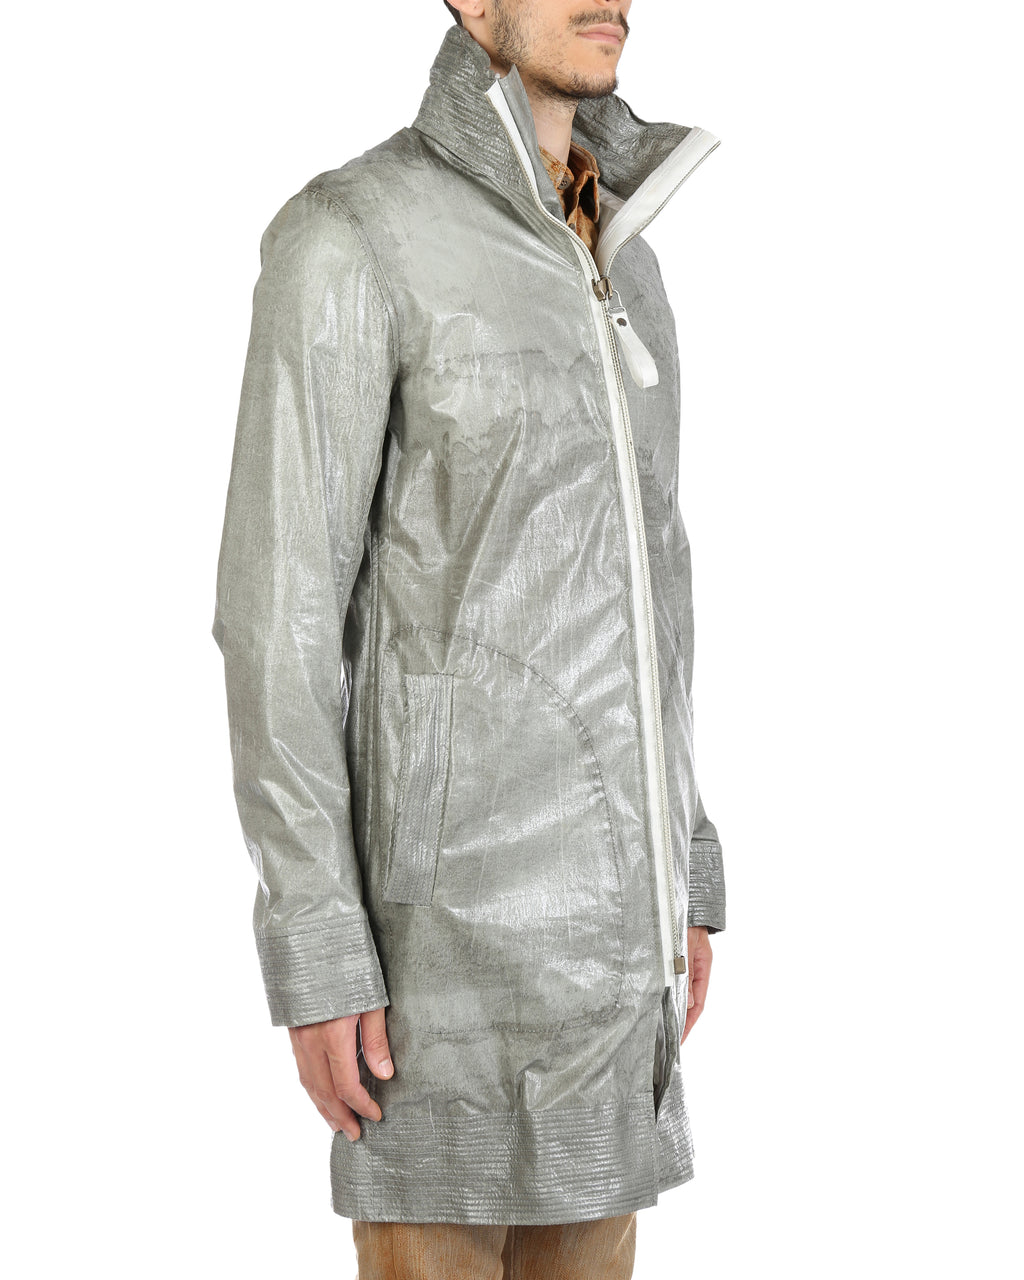 DEEPTI MEN WIRED PARKA WITH AIRLOCK ZIP O-118W DRAG 67 FWBI